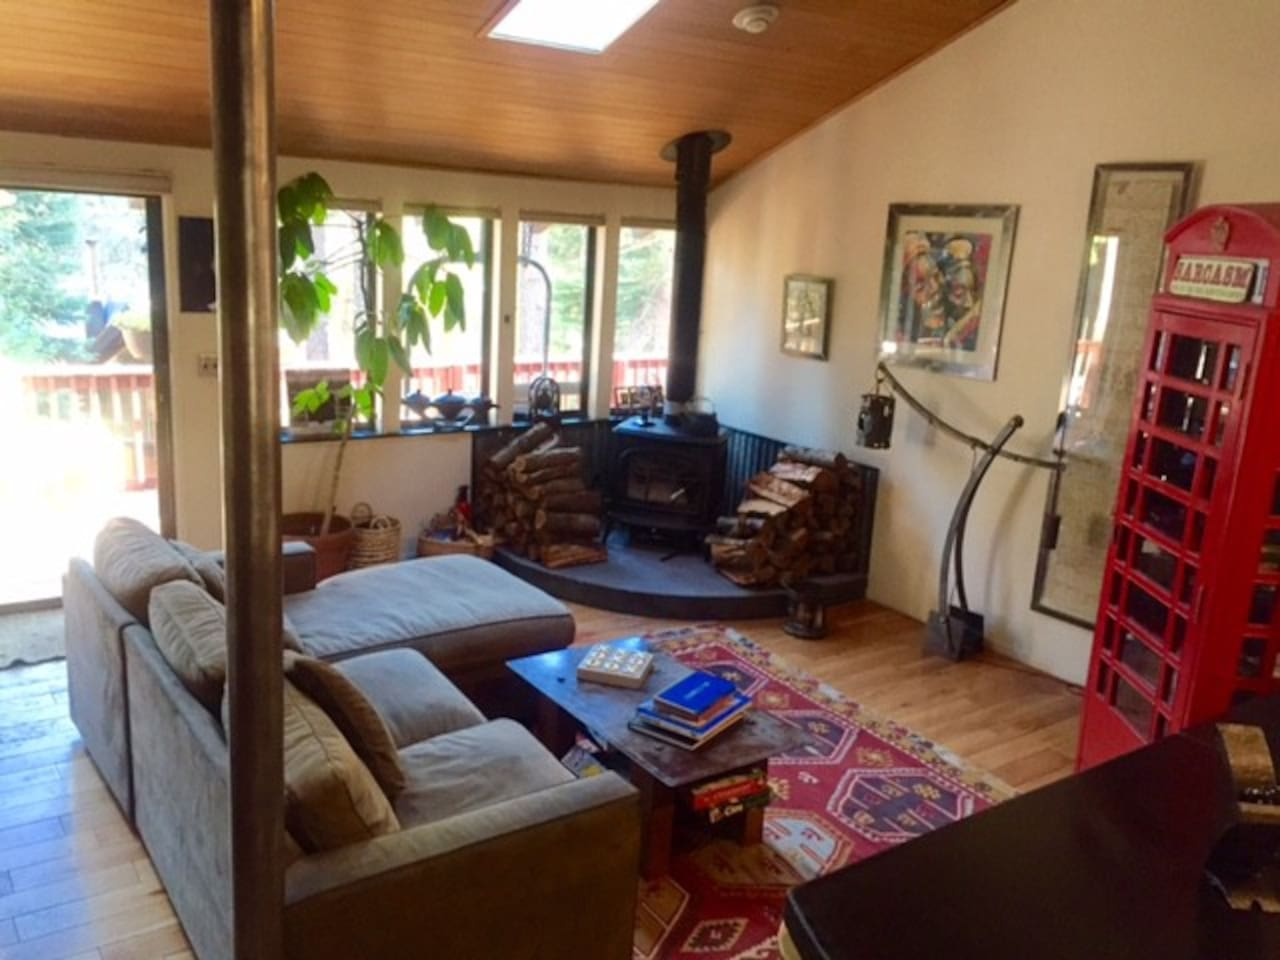 Main lounge area, with a deck that leads to a backyard. Wood stove is a great addition. TV is in telephone booth with books and games for the family.